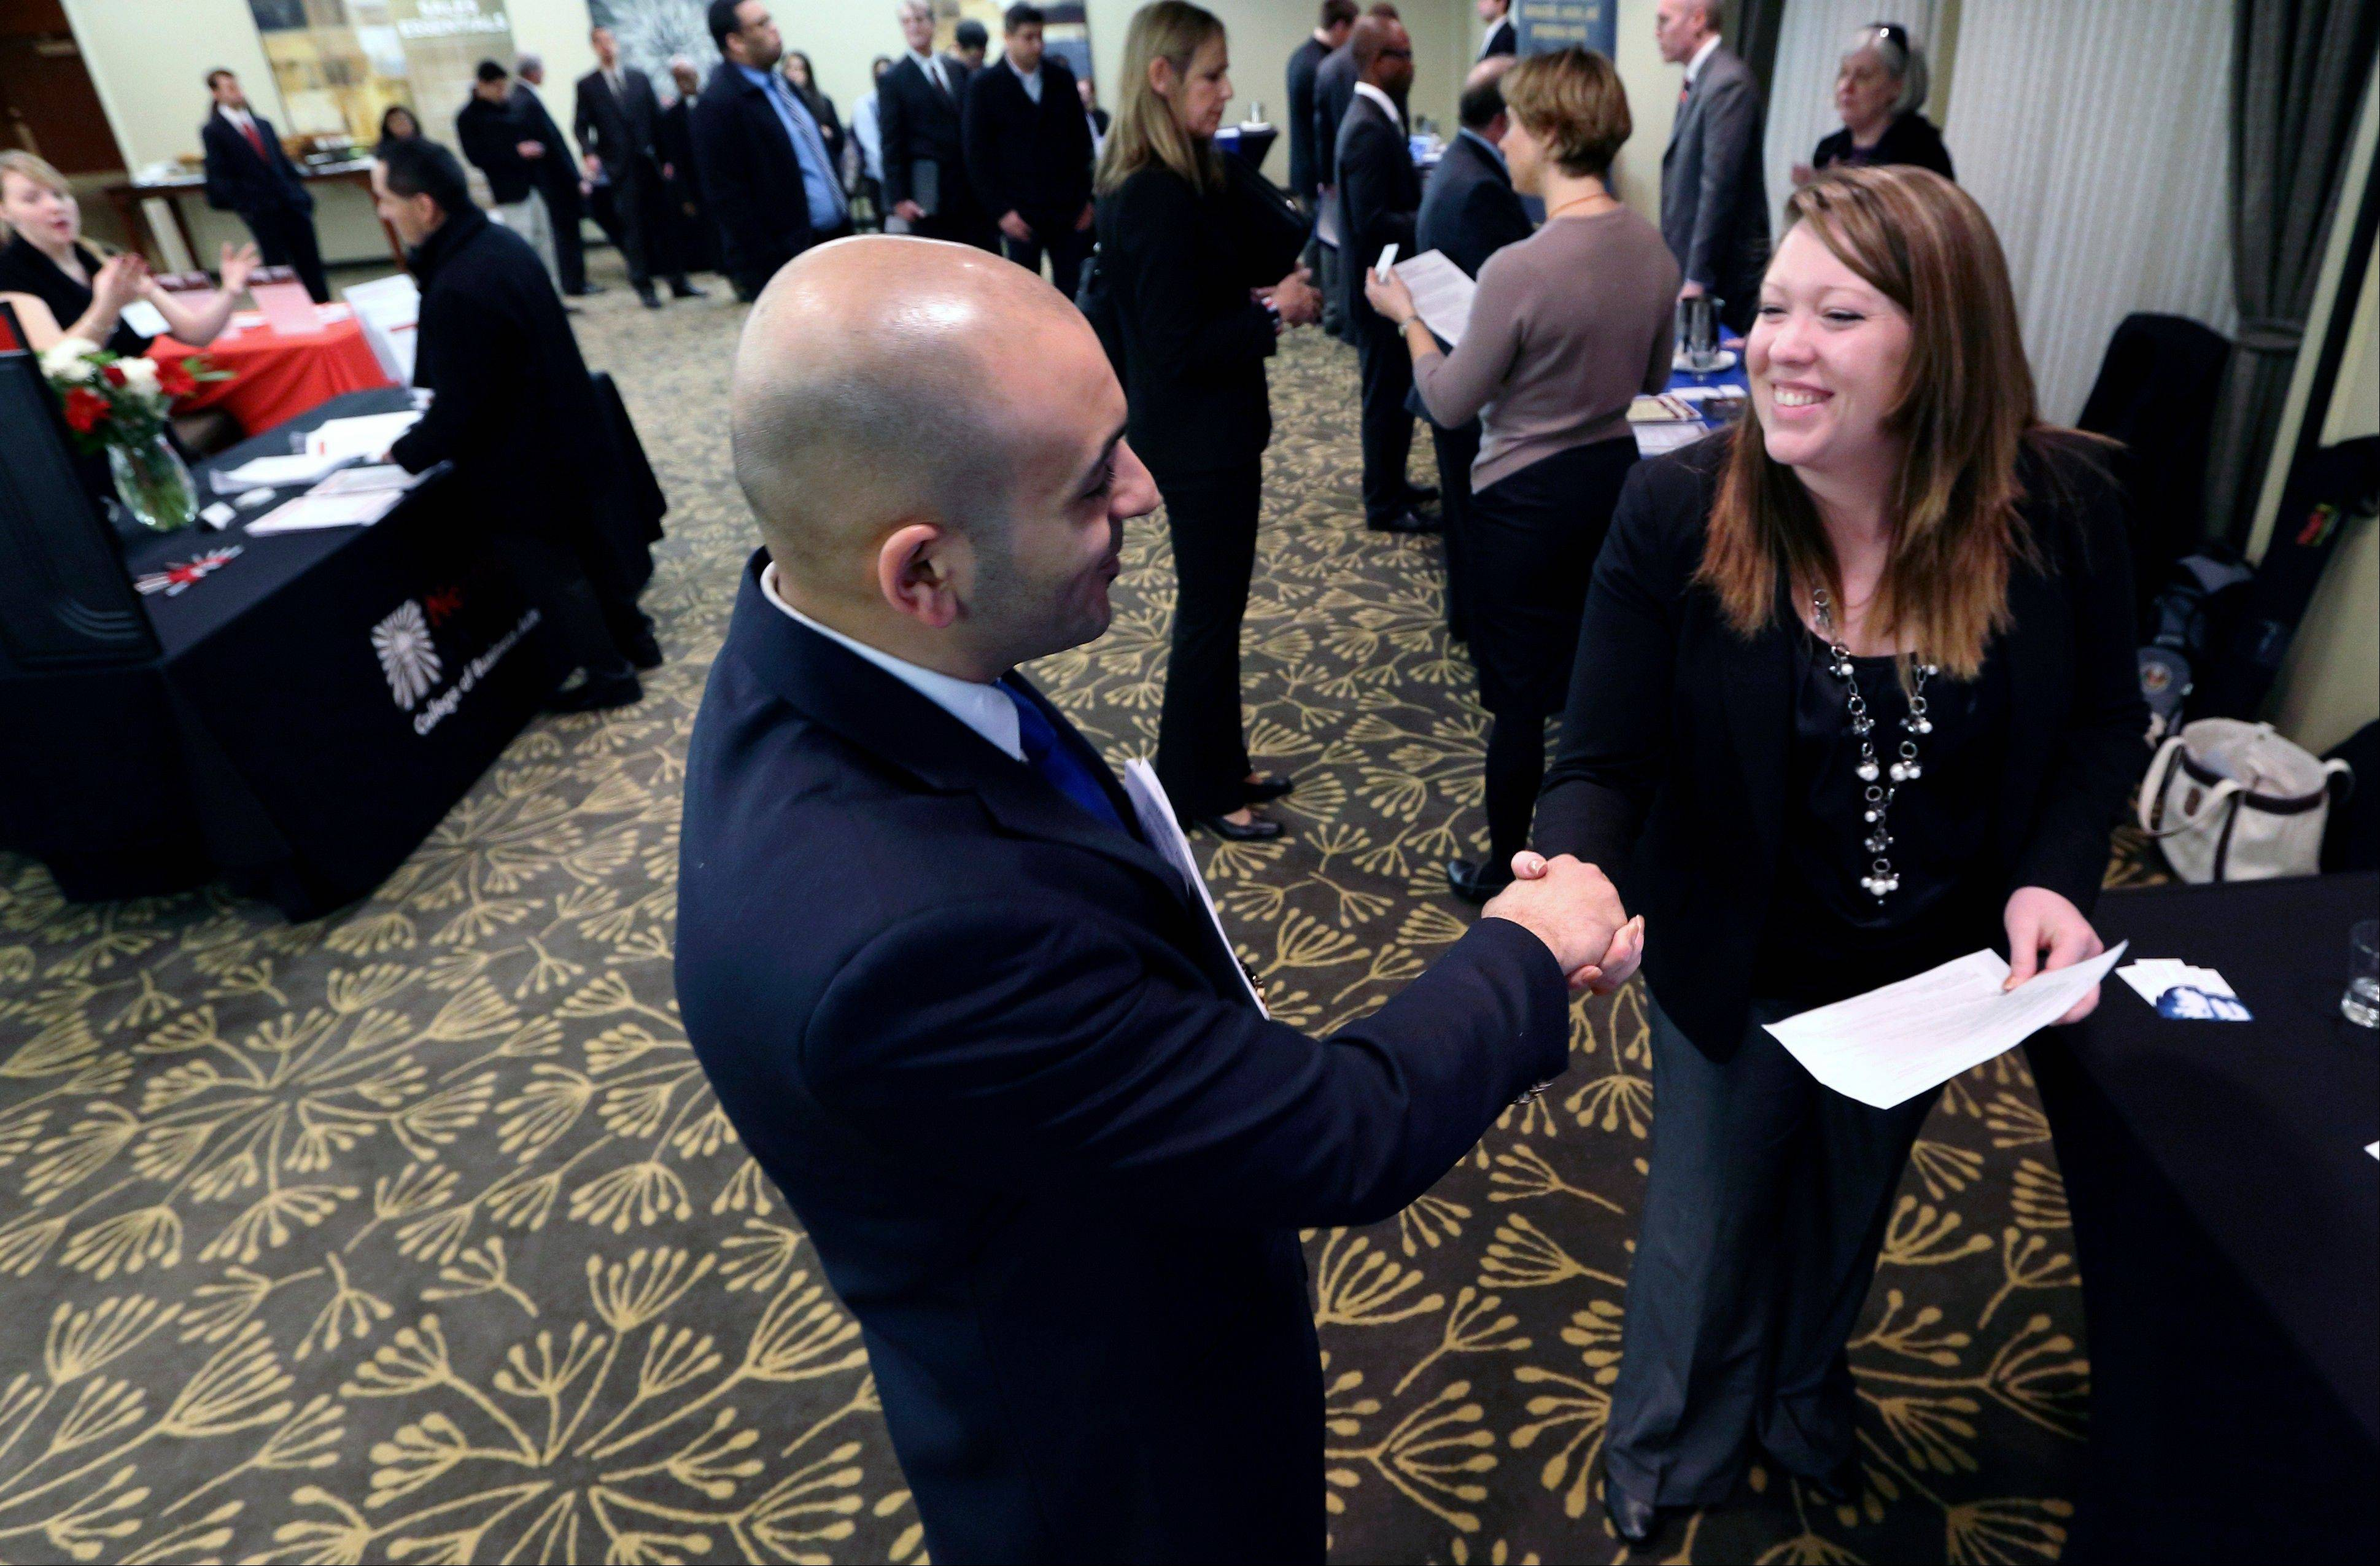 Sayed Mouawad, left, of Providence, R.I., shakes hands with Jillian Wallace of Matix, Inc., during a job fair in Boston. The number of people seeking U.S. unemployment aid fell to a seasonally adjusted 340,000 in the week ended March 2, driving down the four-week average to its lowest level in five years.